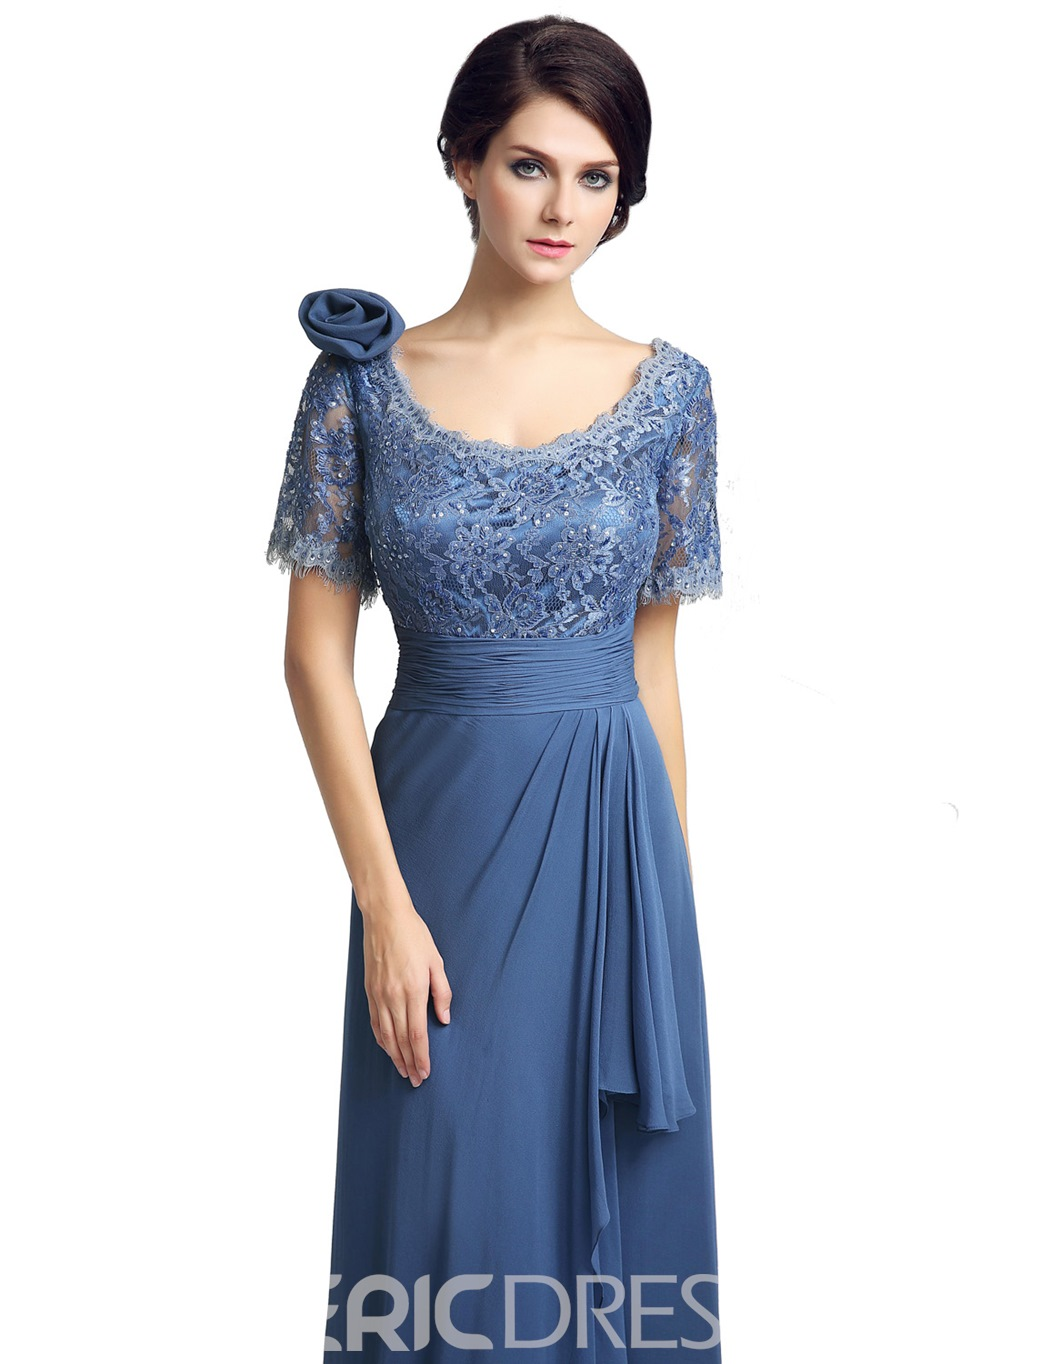 Ericdress Short Sleeves Column Lace Mother of the Bride Dress 2019